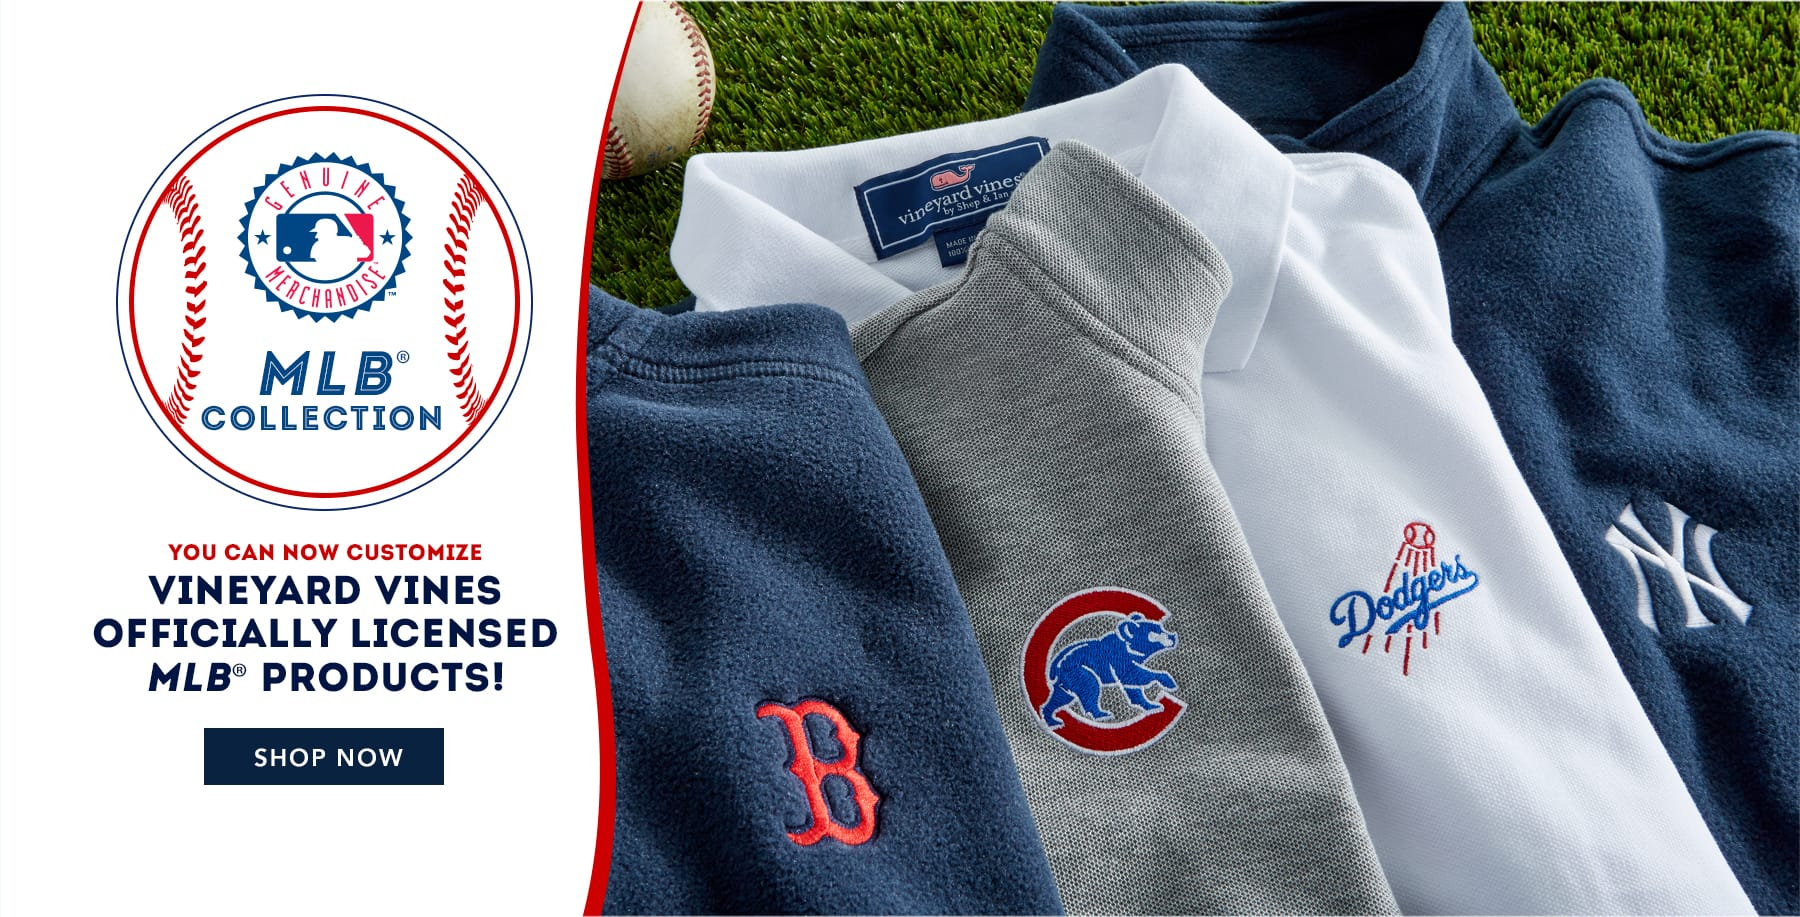 You can now customize vineyard vines officially licensed MLB products. Shop now.